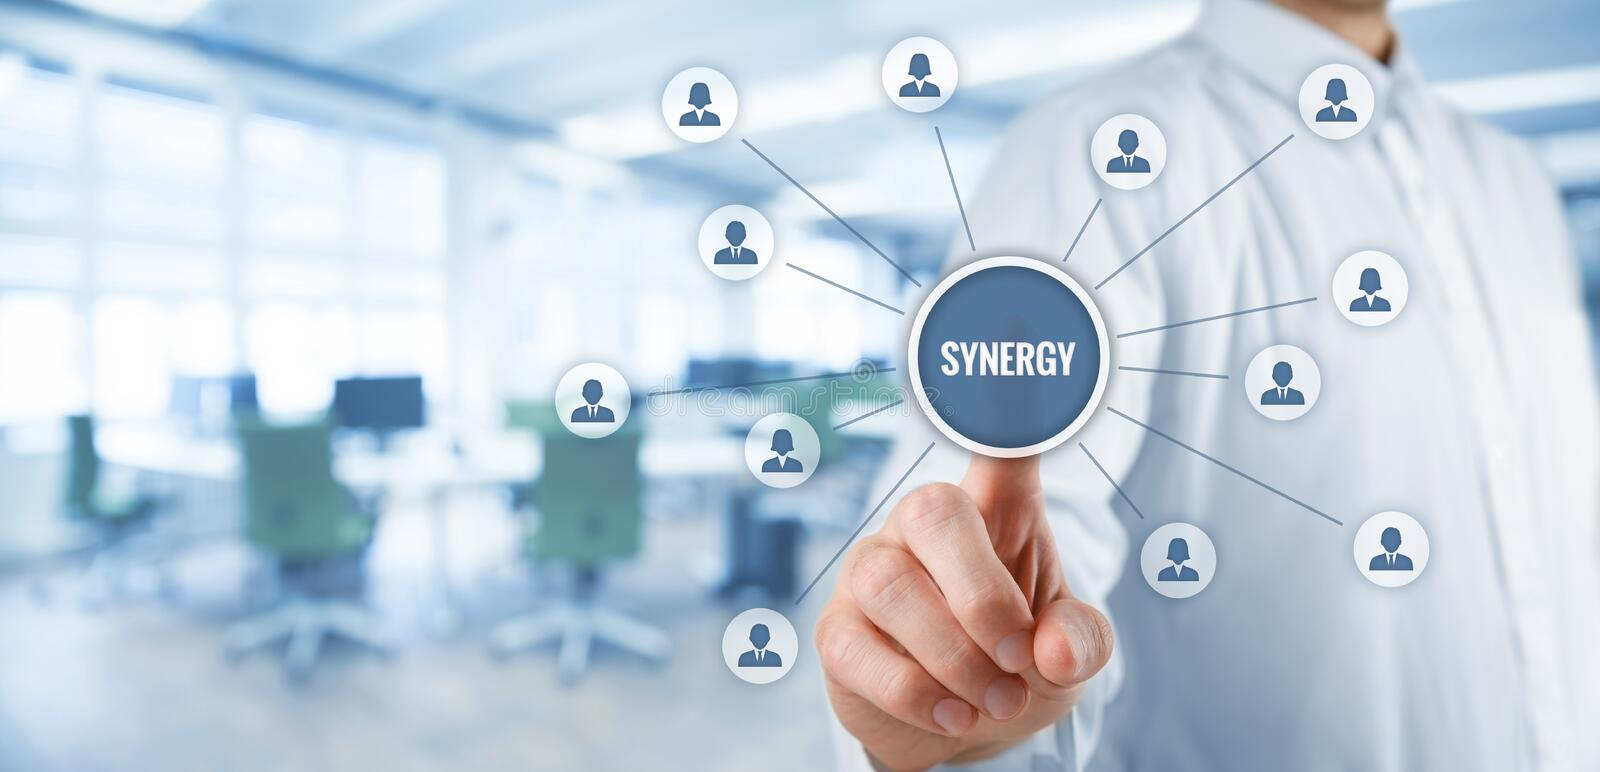 Synergy concept royalty free stock photography